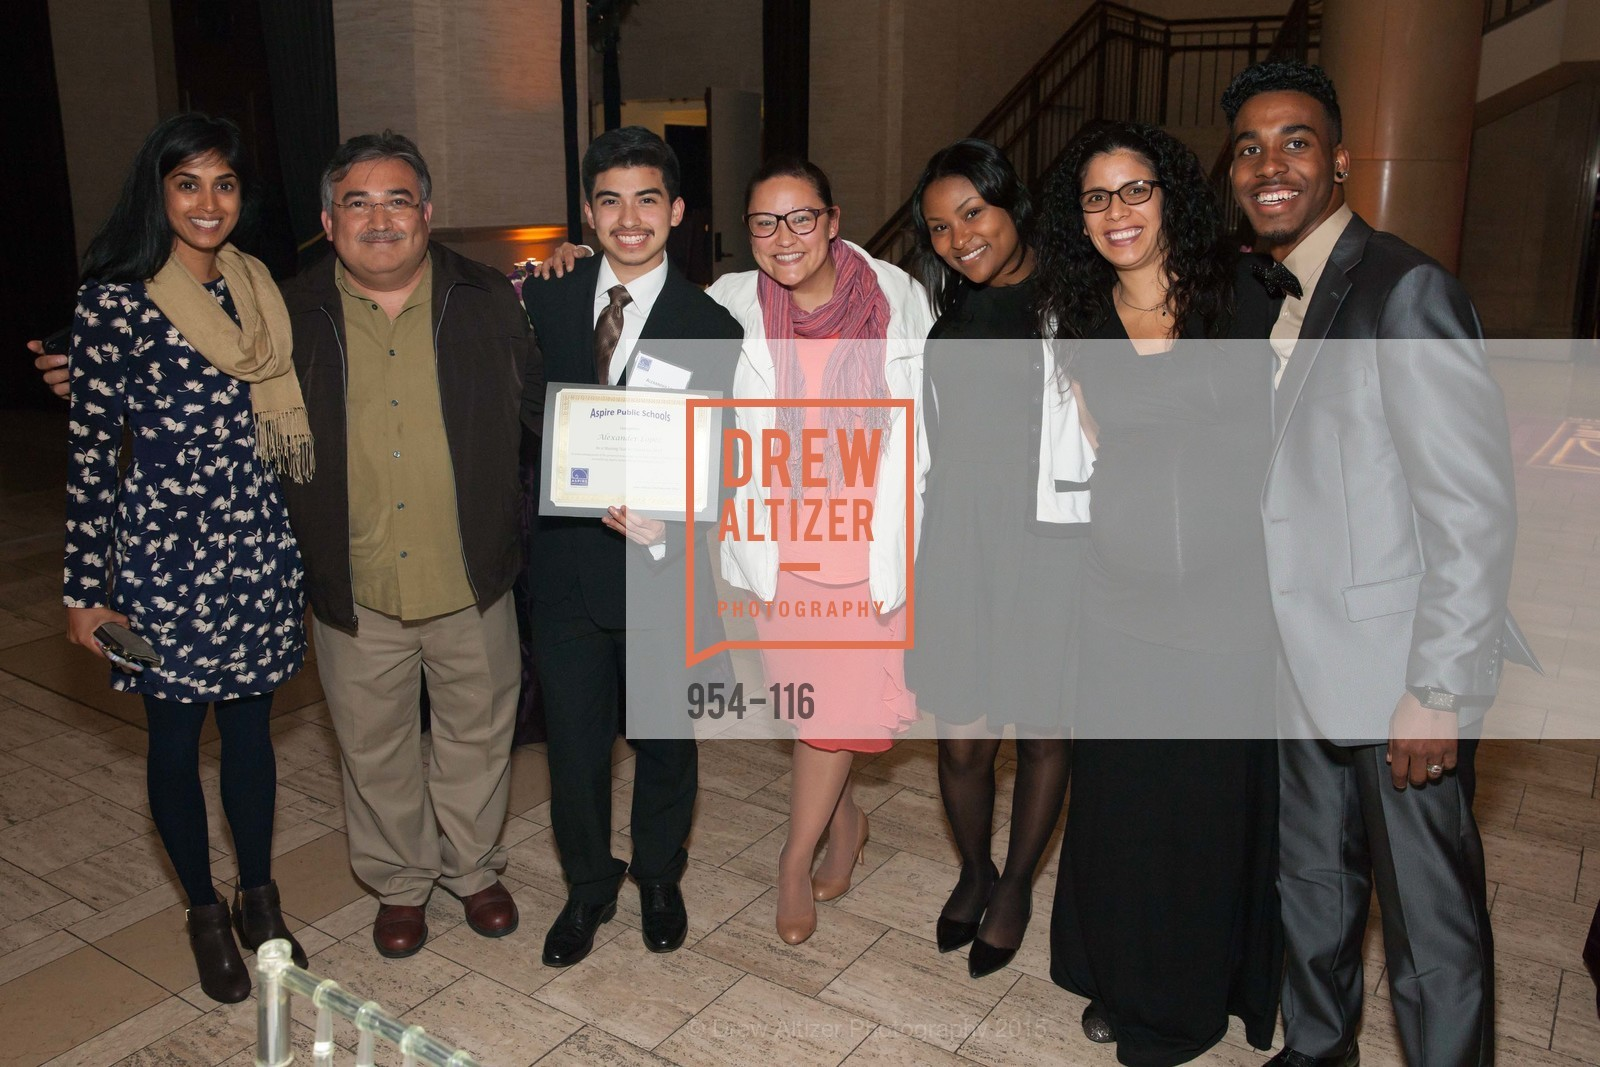 Minnie Setty, Alexander Lopez, Tatiana Lim, Arlena Ford, Sarah Salazar, Xavier Taylor, Aspire Public Schools 2nd Annual Gala, Bently Reserve, May 20th, 2015,Drew Altizer, Drew Altizer Photography, full-service agency, private events, San Francisco photographer, photographer california